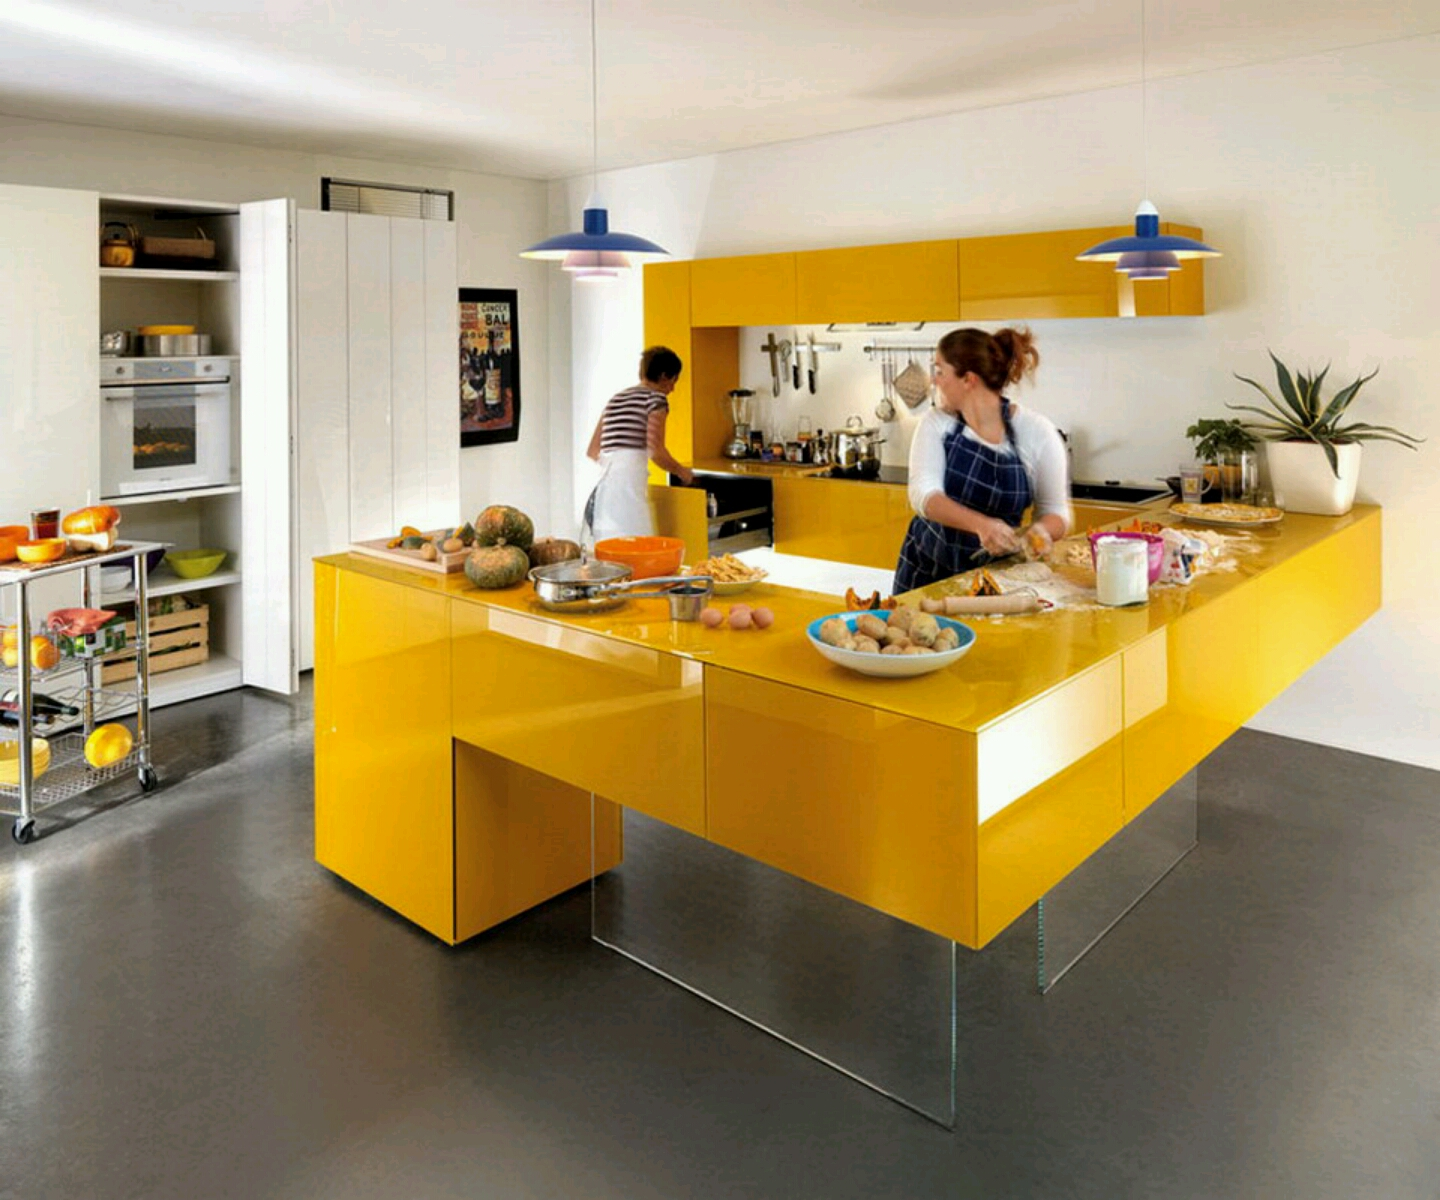 Modern kitchen cabinets designs ideas furniture gallery for Modern kitchen design photos